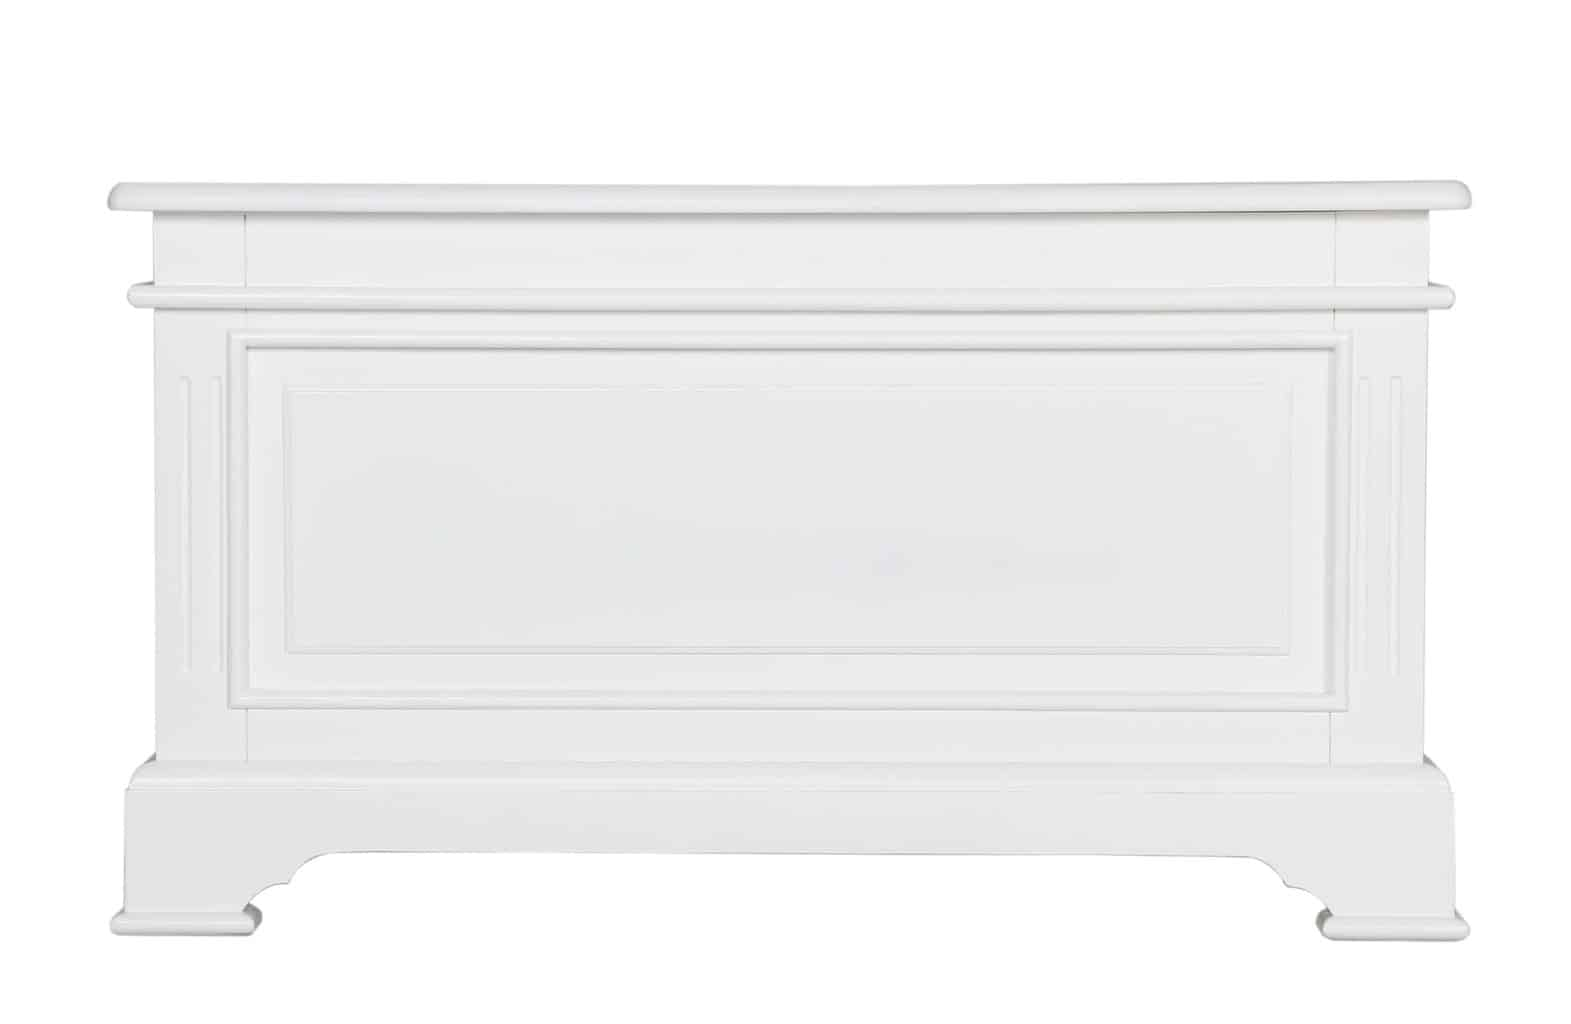 Bedford White Painted Solid Pine Blanket Box Storage Trunk Unit